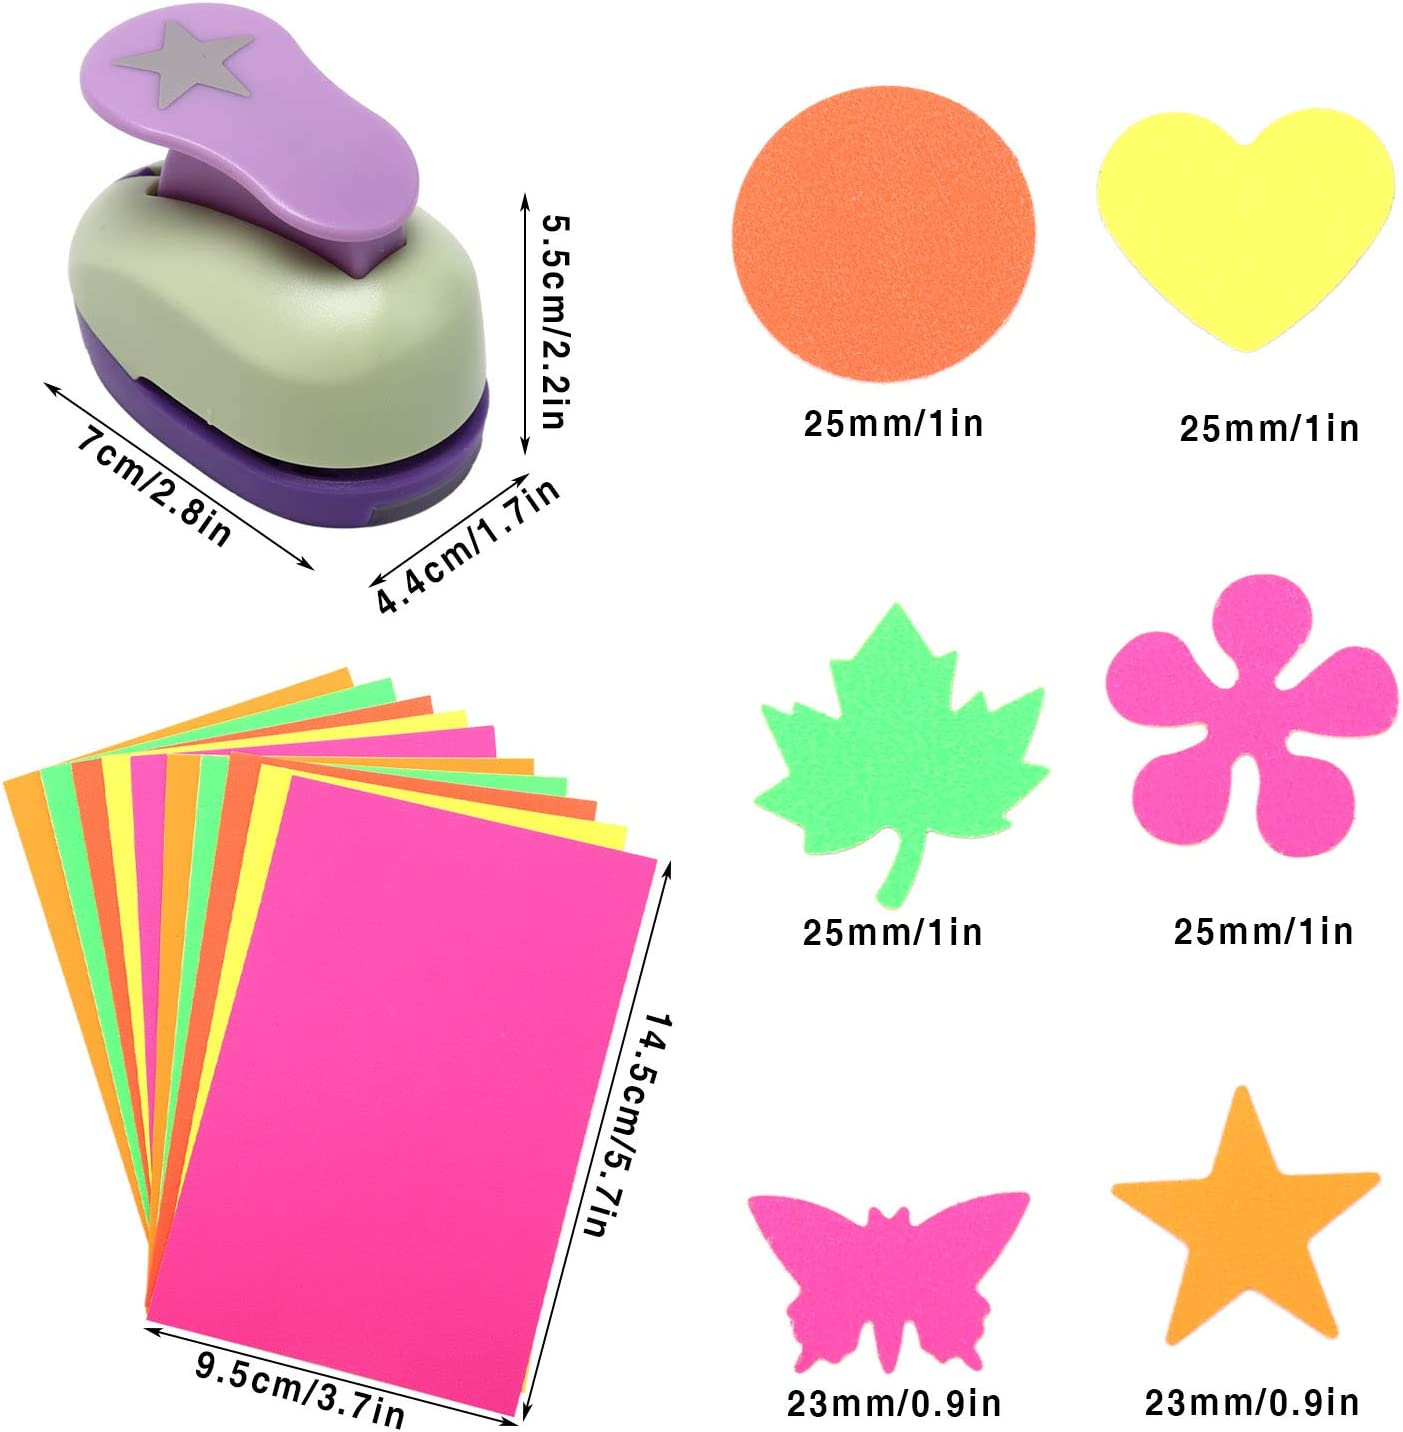 6 Shape Punches Circle Heart Buytra Scrapbook Paper Punchers 1 Inch Hole Punches Butterfly for Kids Card Making DIY Crafts Star 10 PCS Colored Adhesive Sticker Paper Cards Maple Leaf Flower